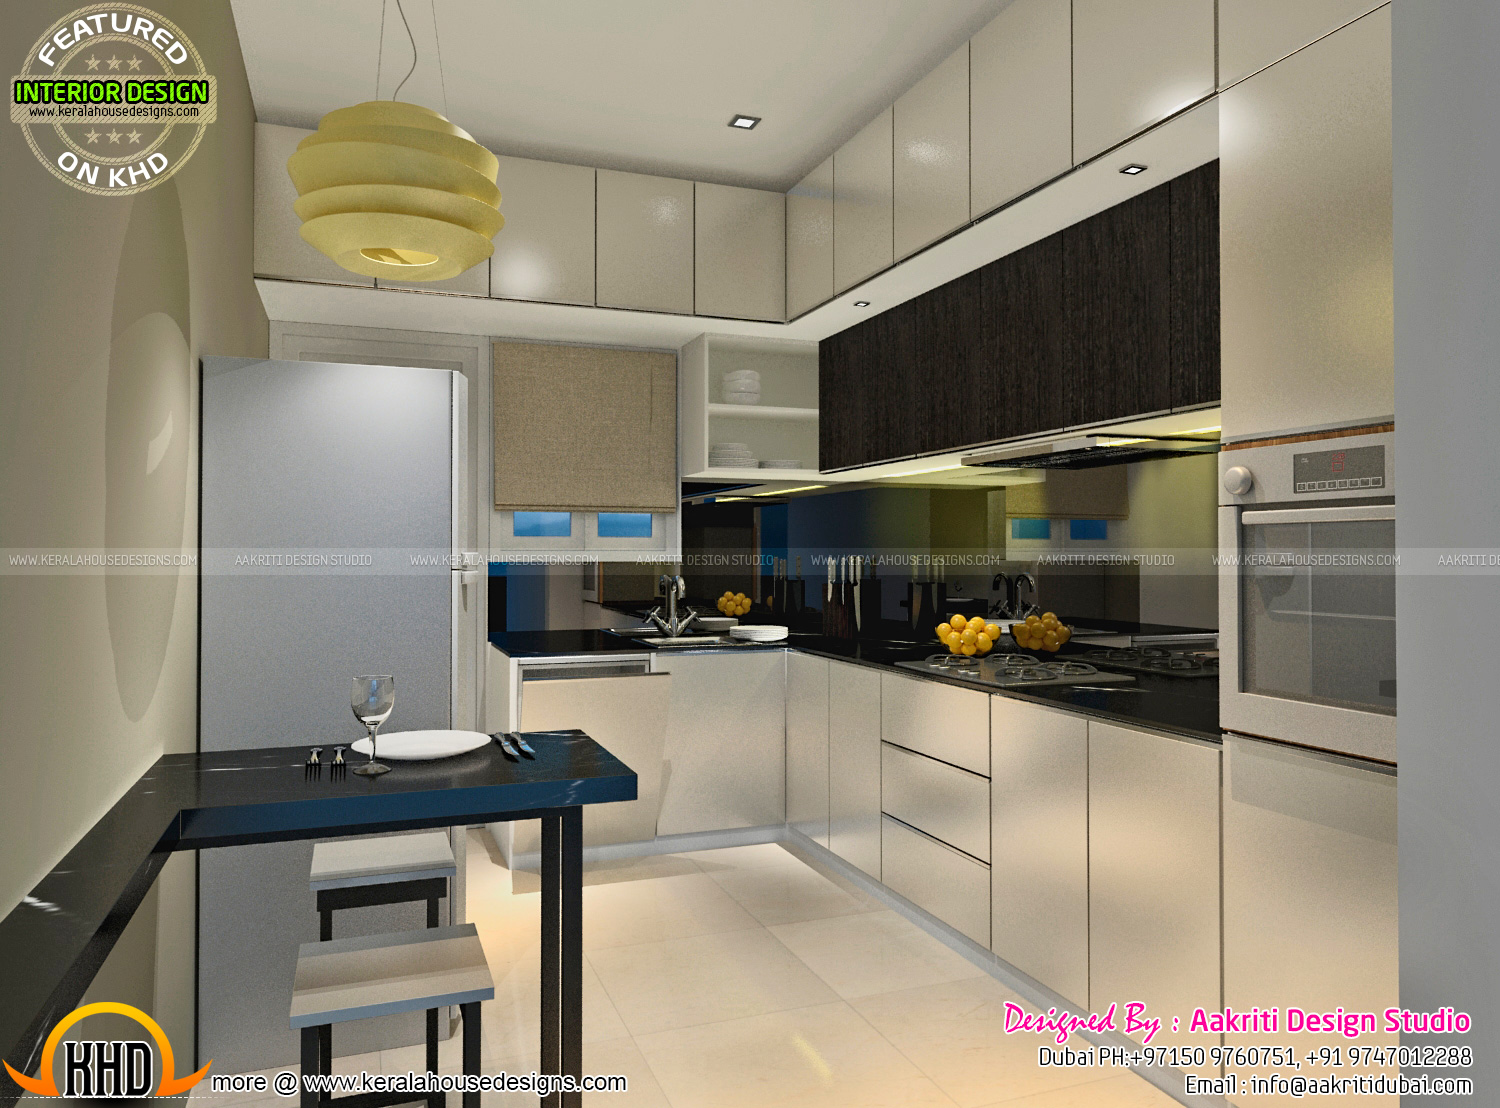 Dining kitchen wash area interior kerala home design for Kitchen interior design pictures